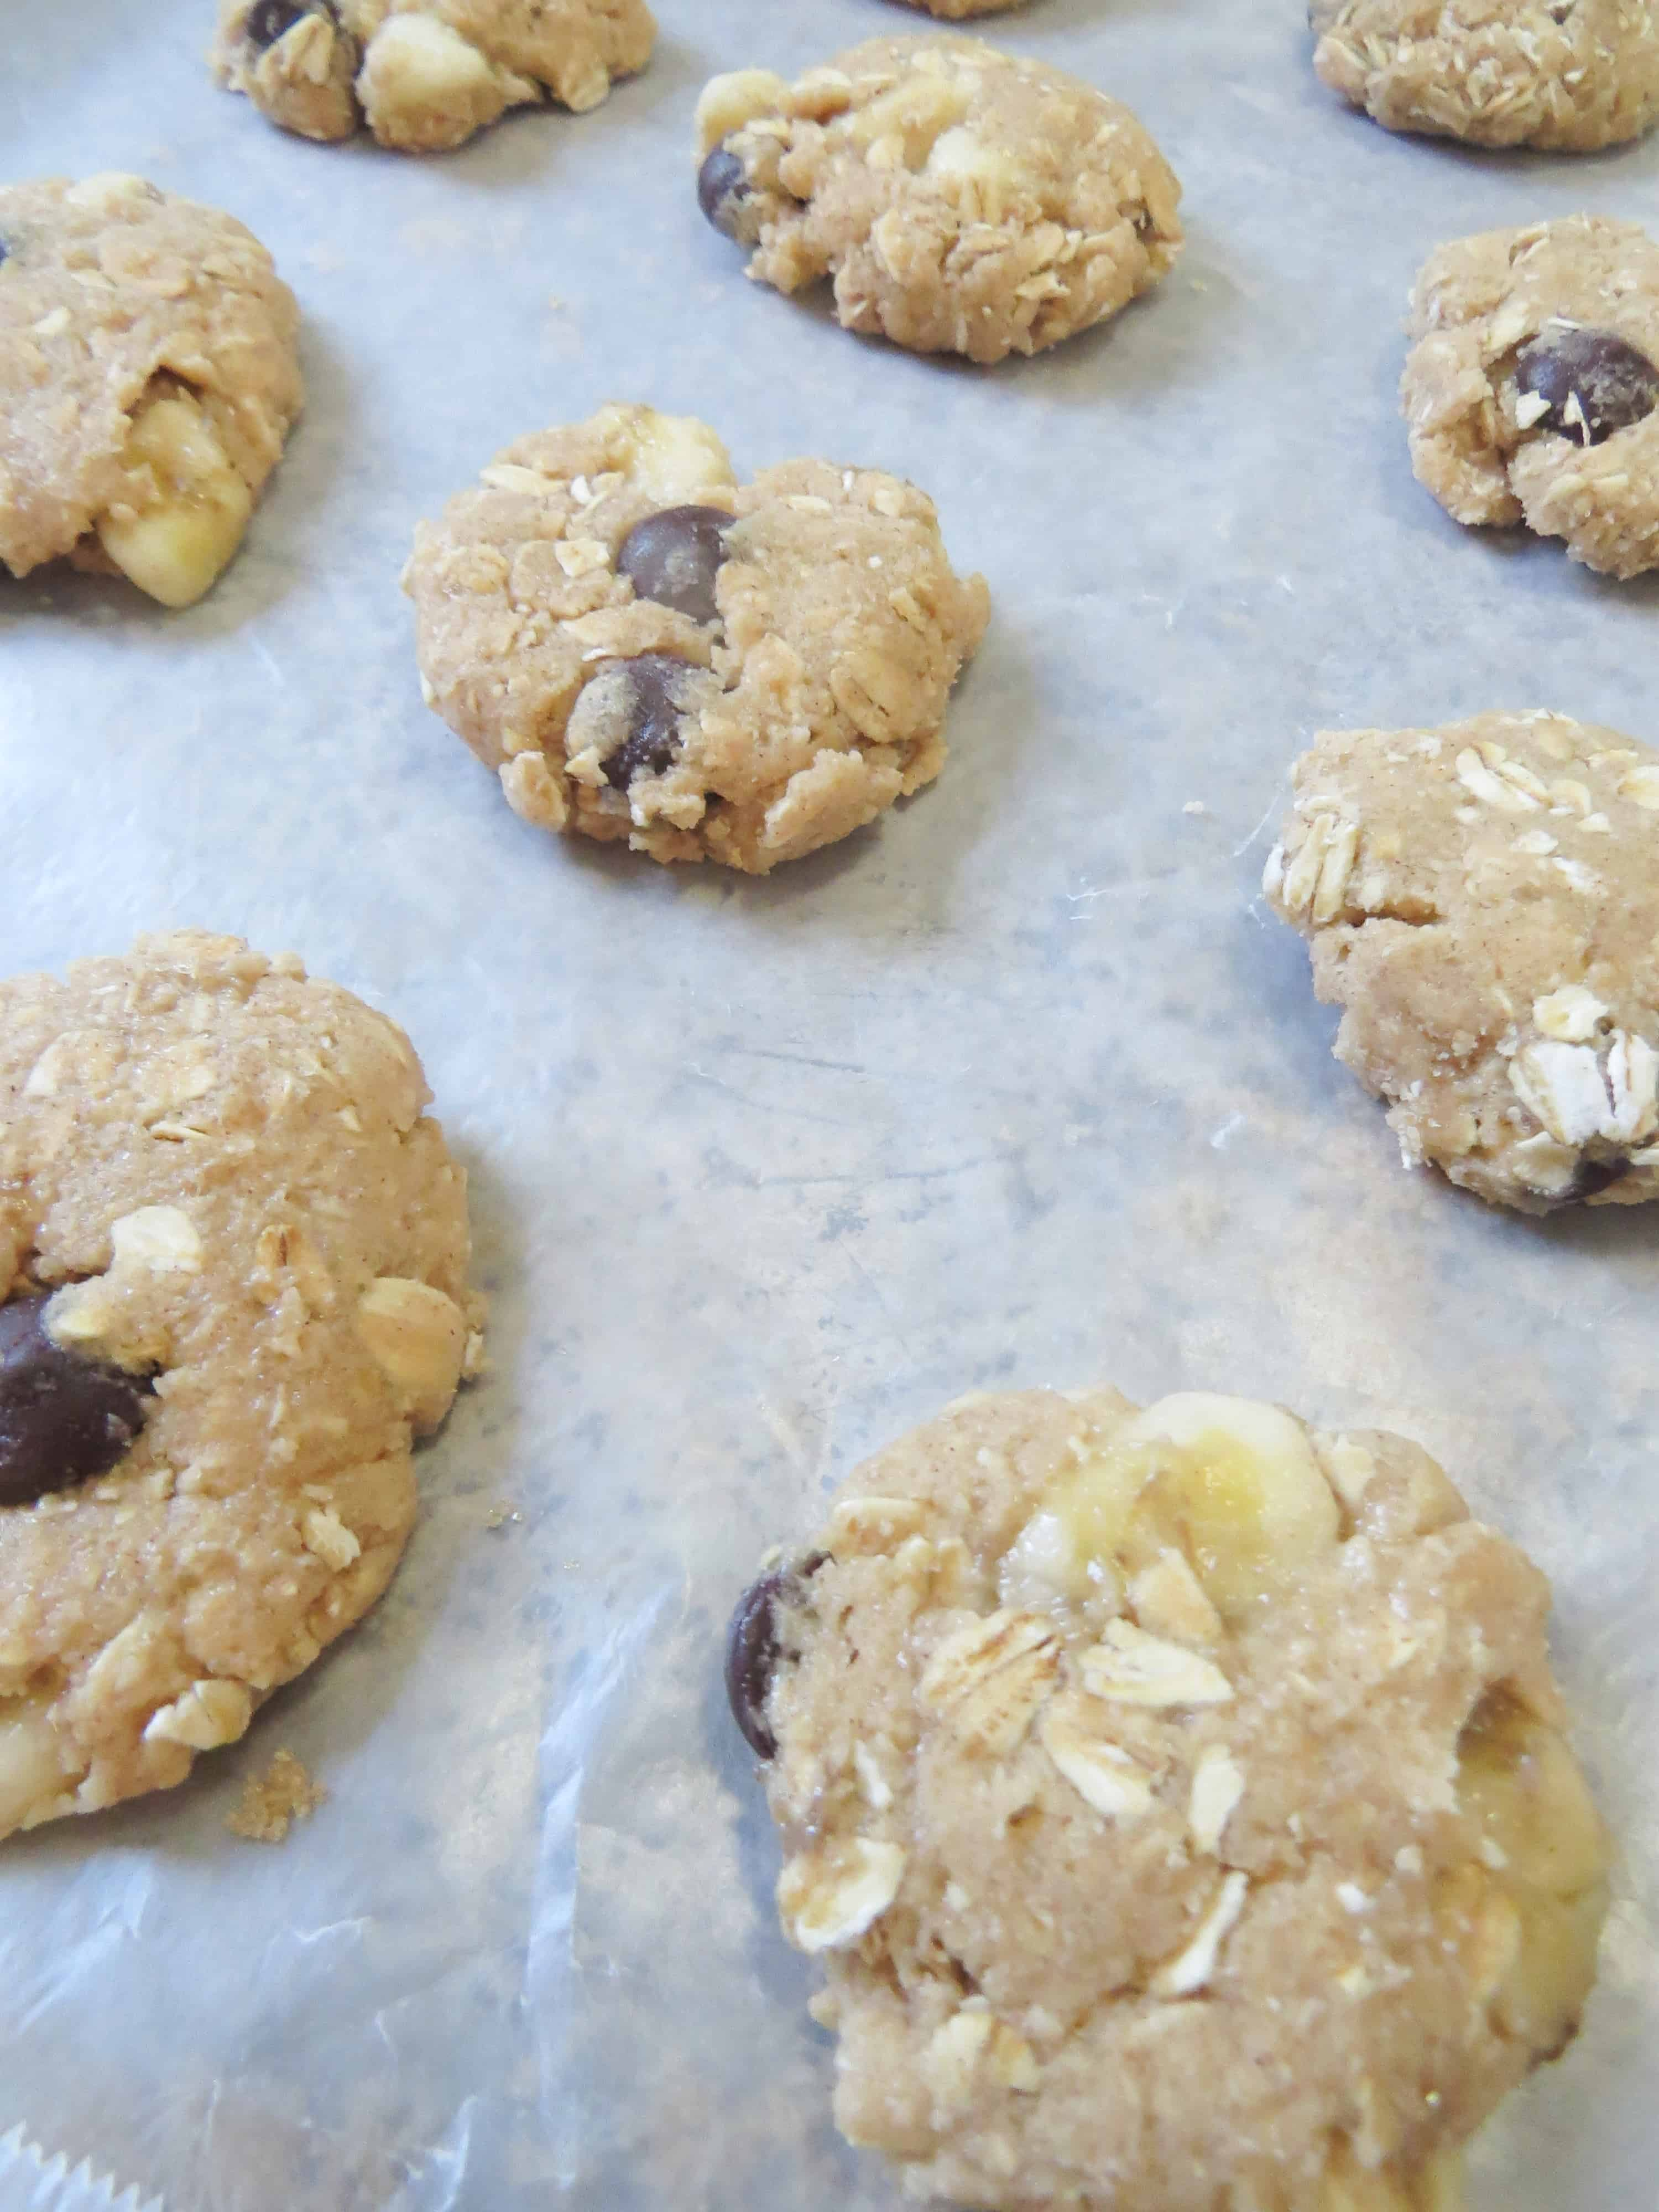 Oatmeal Banana Chocolate Chip Cookies on baking sheet